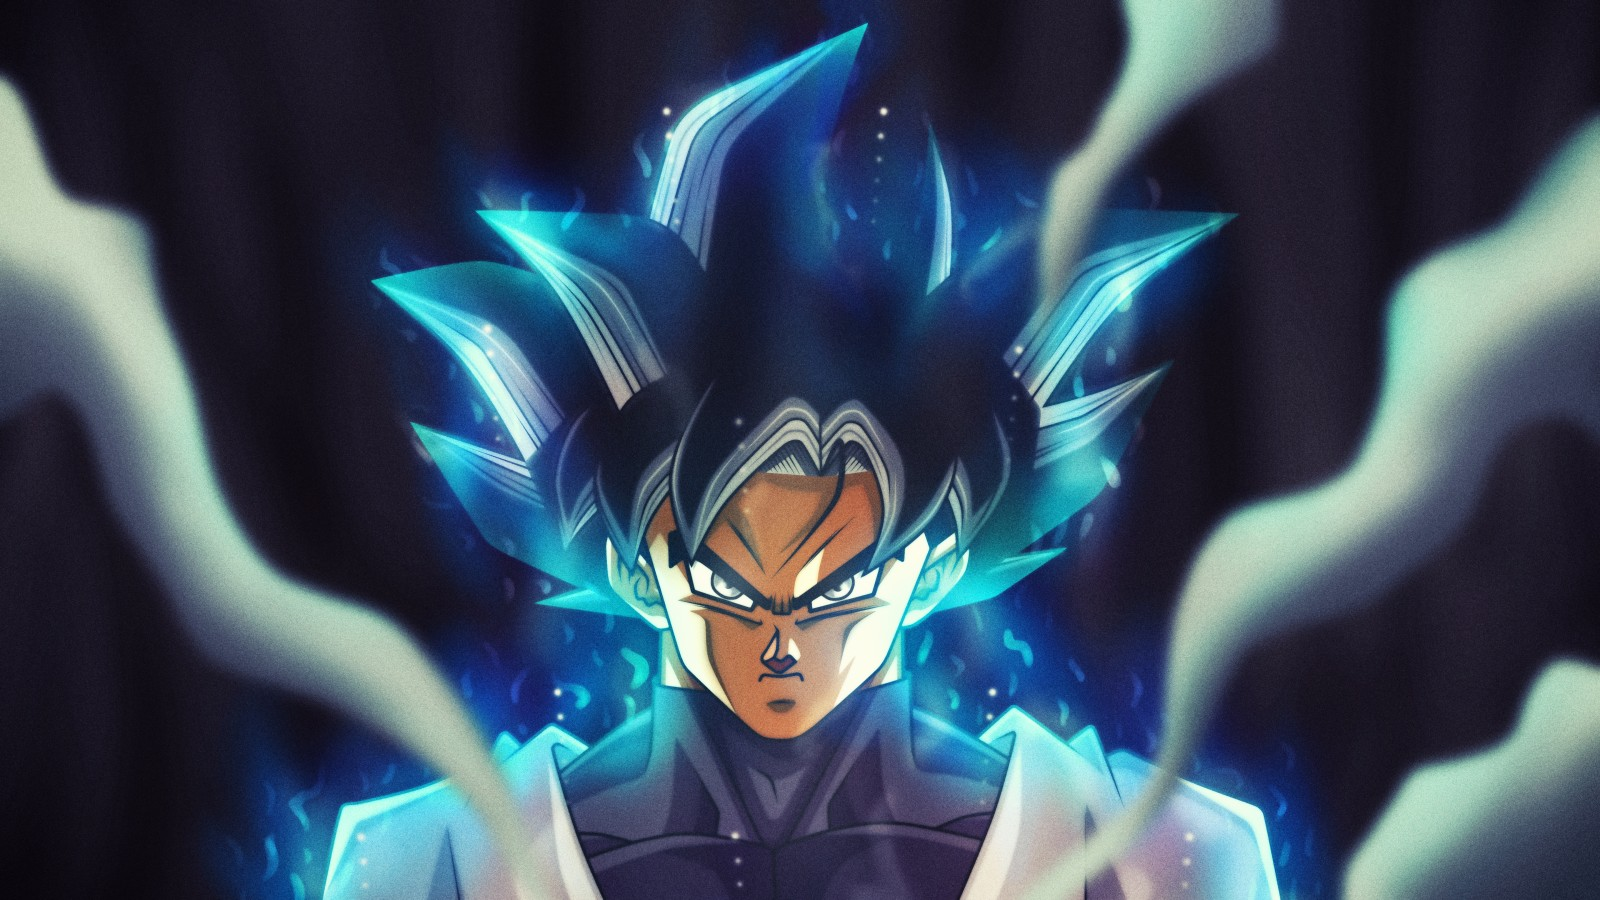 3d Wallpaper For Iphone 6s Plus Goku Black 5k Wallpapers Hd Wallpapers Id 25508